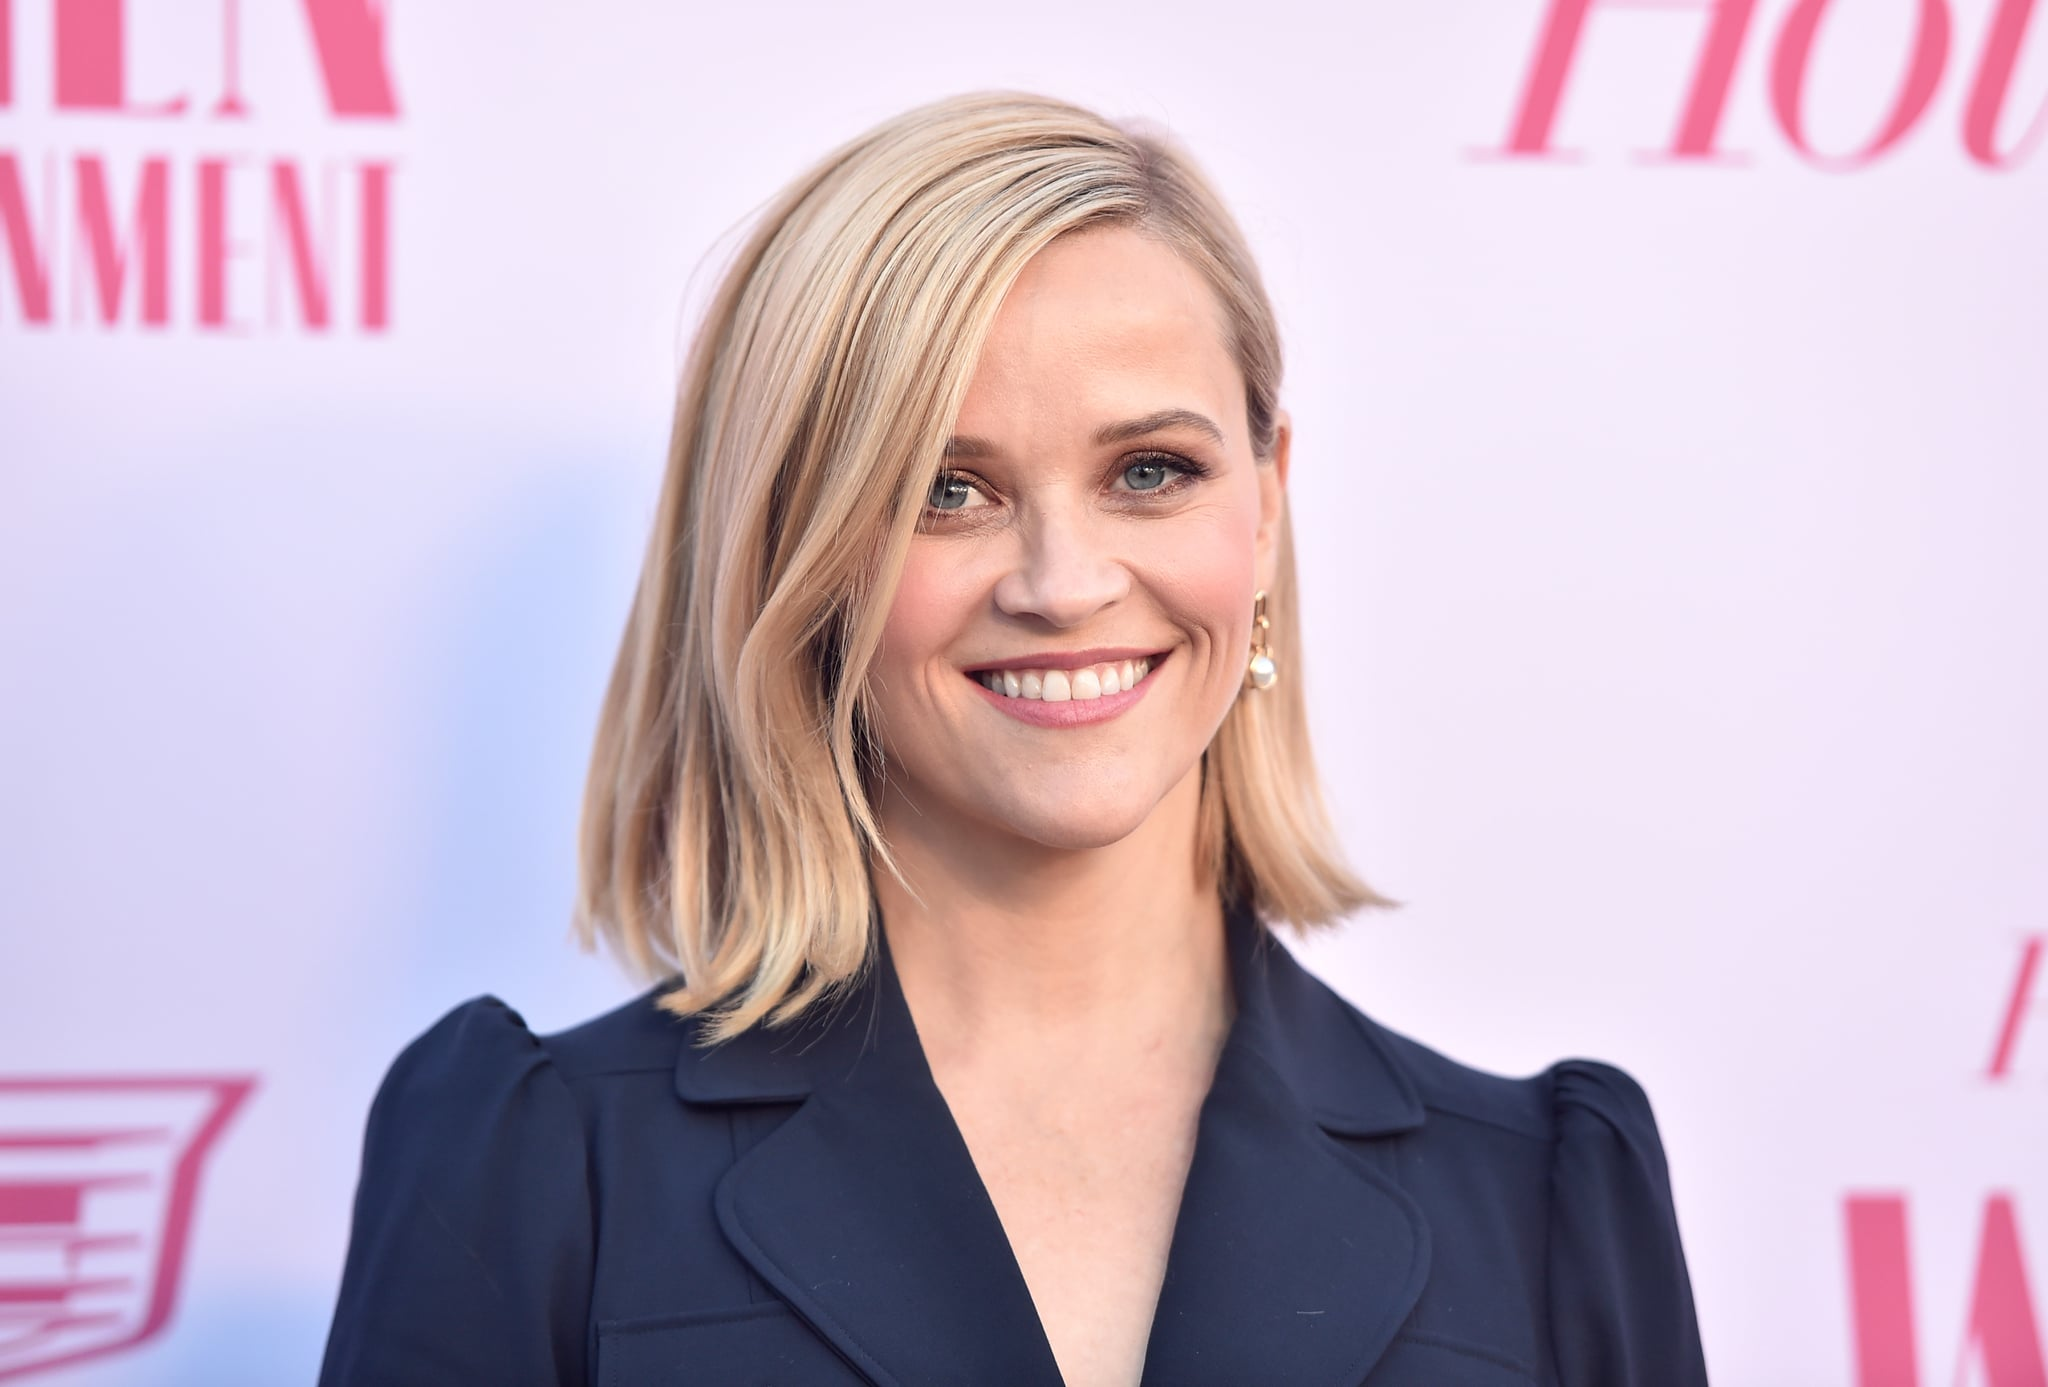 HOLLYWOOD, CALIFORNIA - DECEMBER 11: Honoree Reese Witherspoon attends The Hollywood Reporter's Power 100 Women in Entertainment at Milk Studios on December 11, 2019 in Hollywood, California. (Photo by Alberto E. Rodriguez/Getty Images for The Hollywood Reporter)